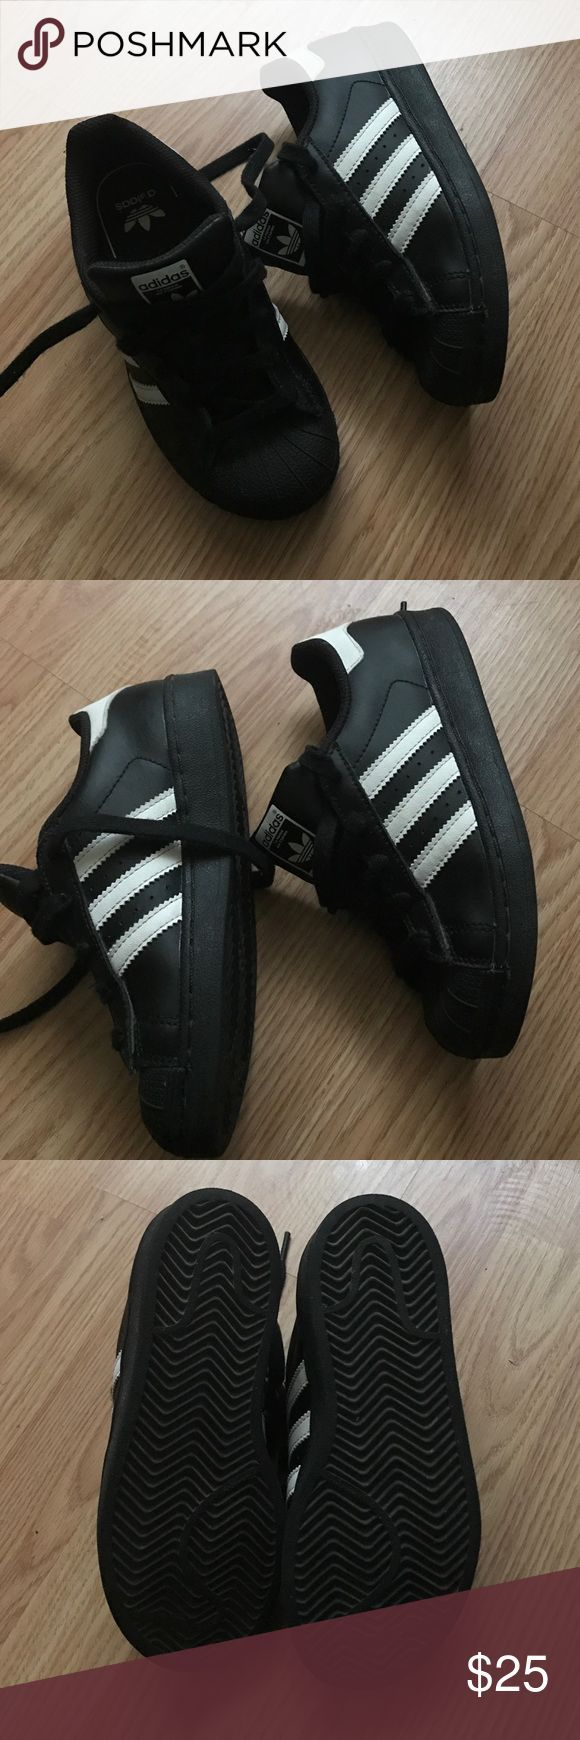 Cool Adidas Shoes ADIDAS Great condition, very minimal wear. Kid size 1. My  7 yr old daughter gre... Check more at http://24shopping.ga/fashion/adidas-shoes-adidas-great-condition-very-minimal-wear-kid-size-1-my-7-yr-old-daughter-gre/